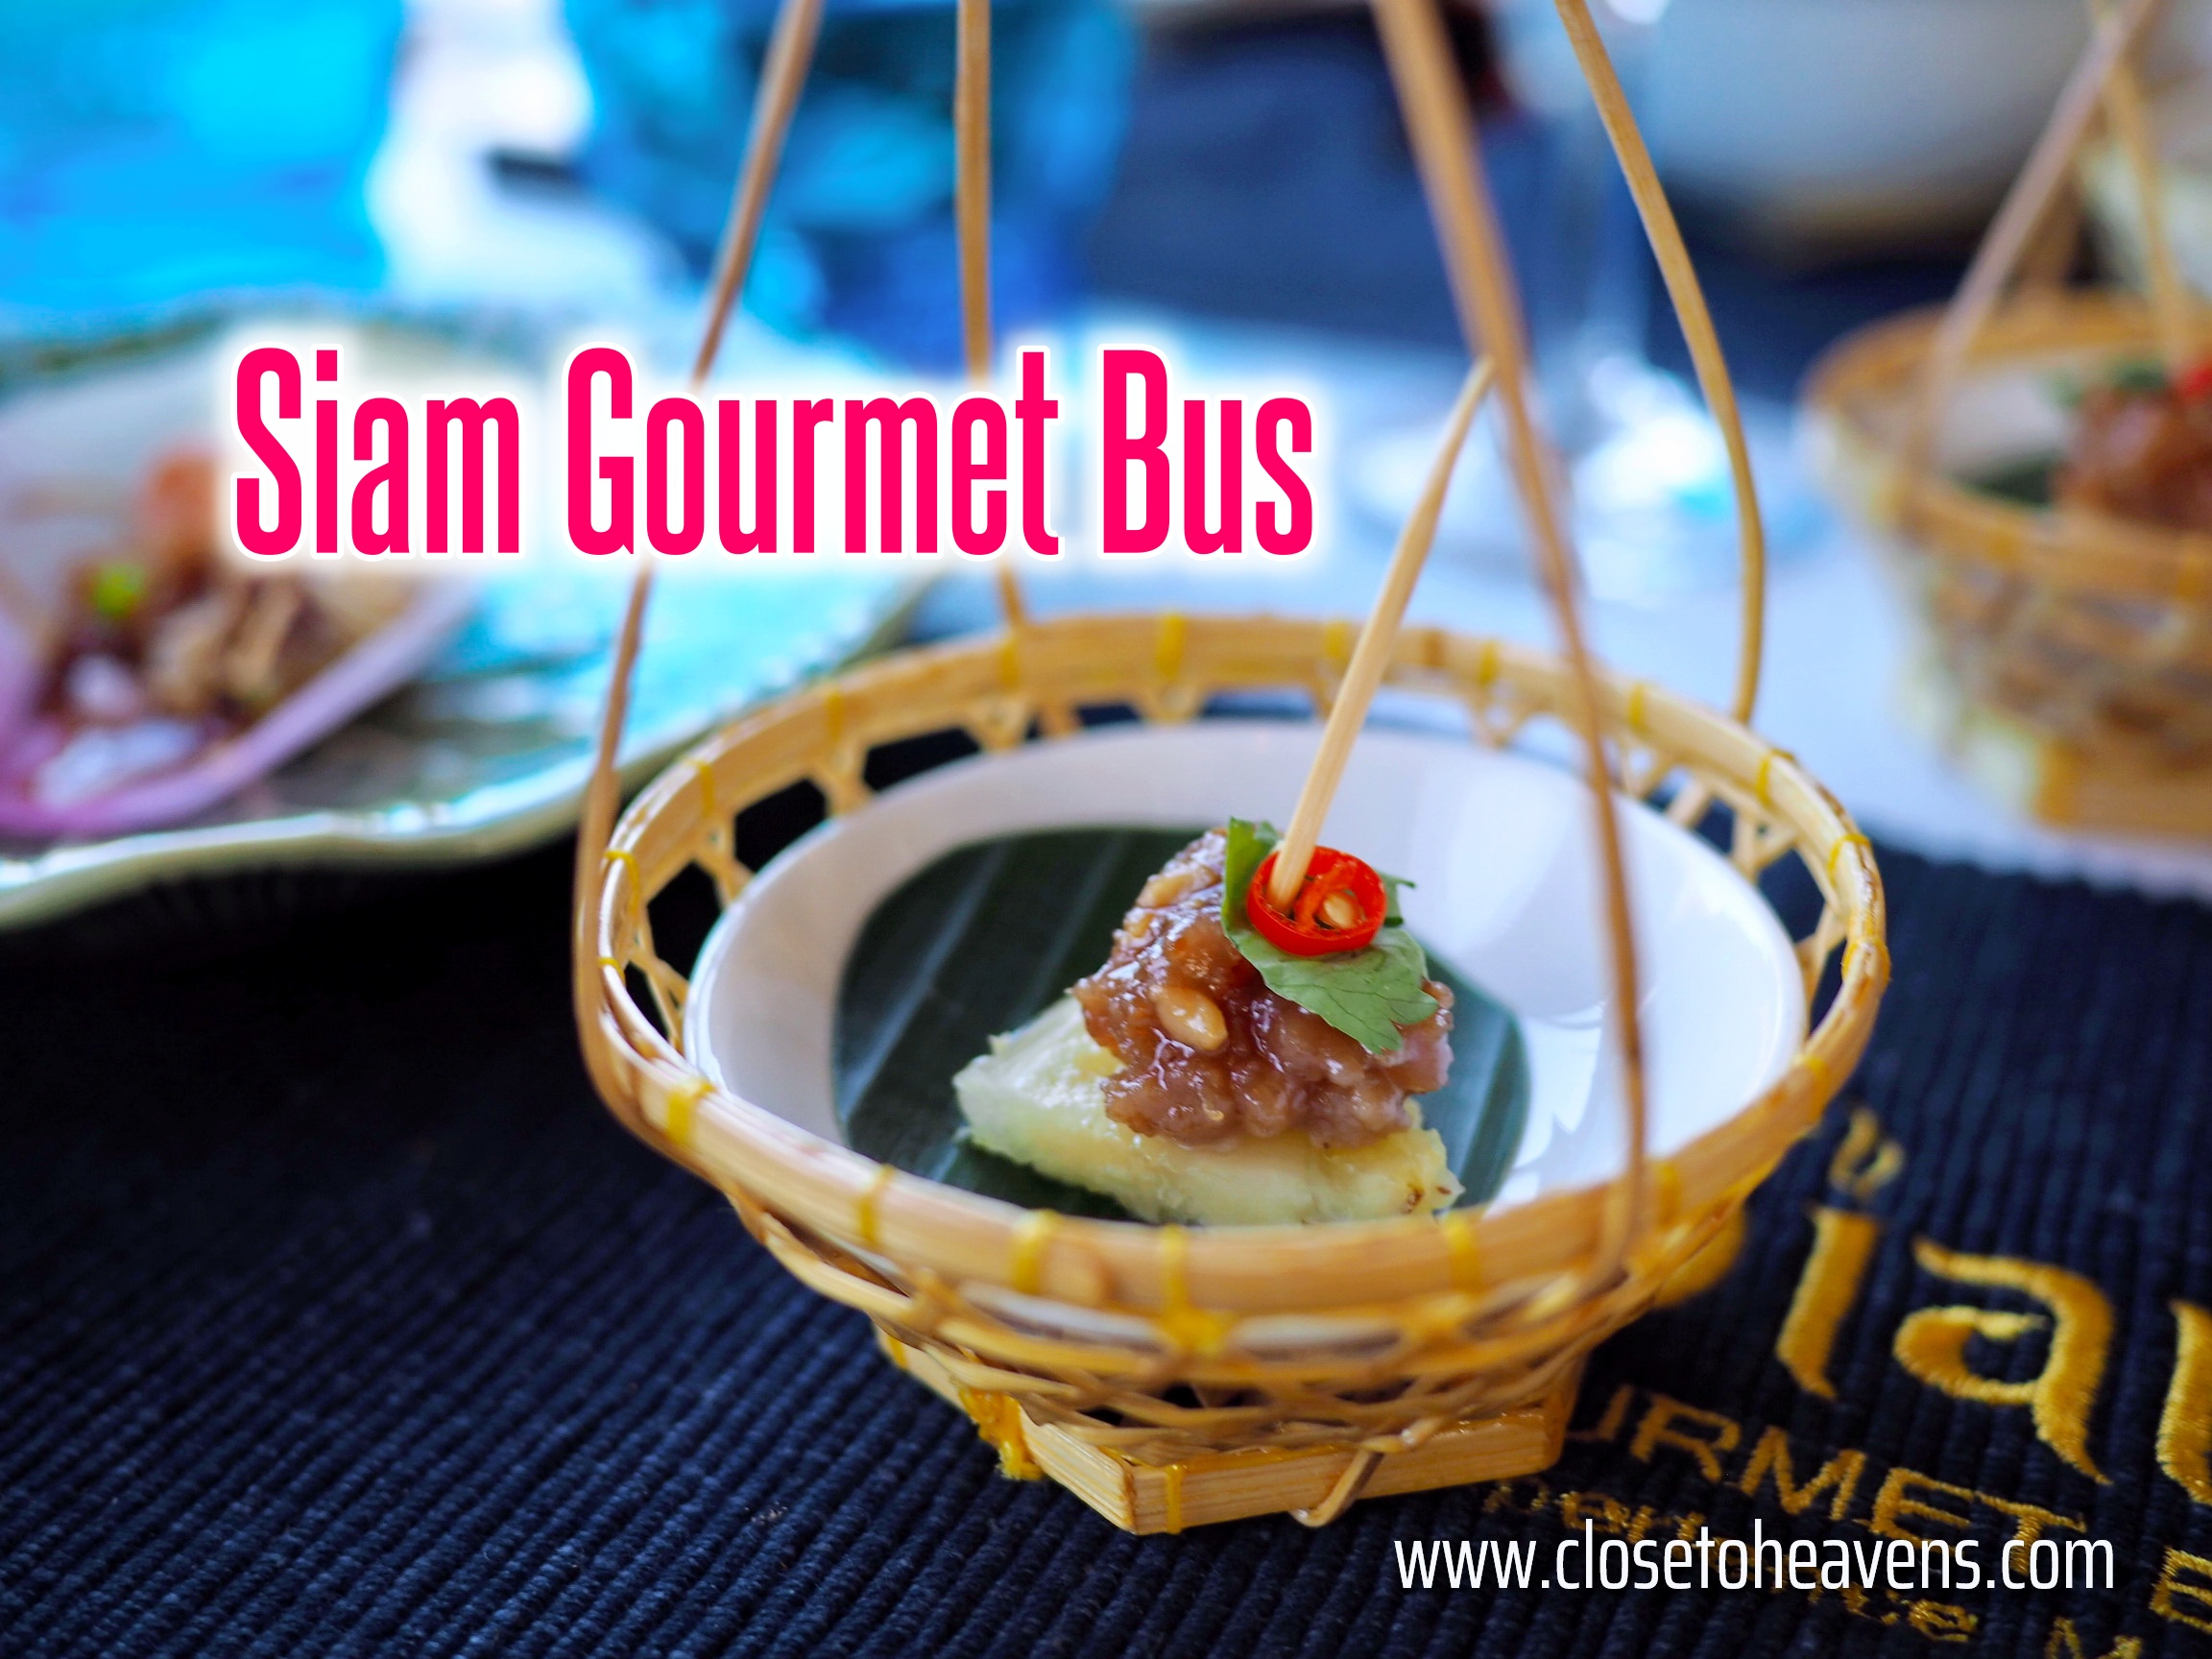 Siam Gourmet Bus, a new dining experience